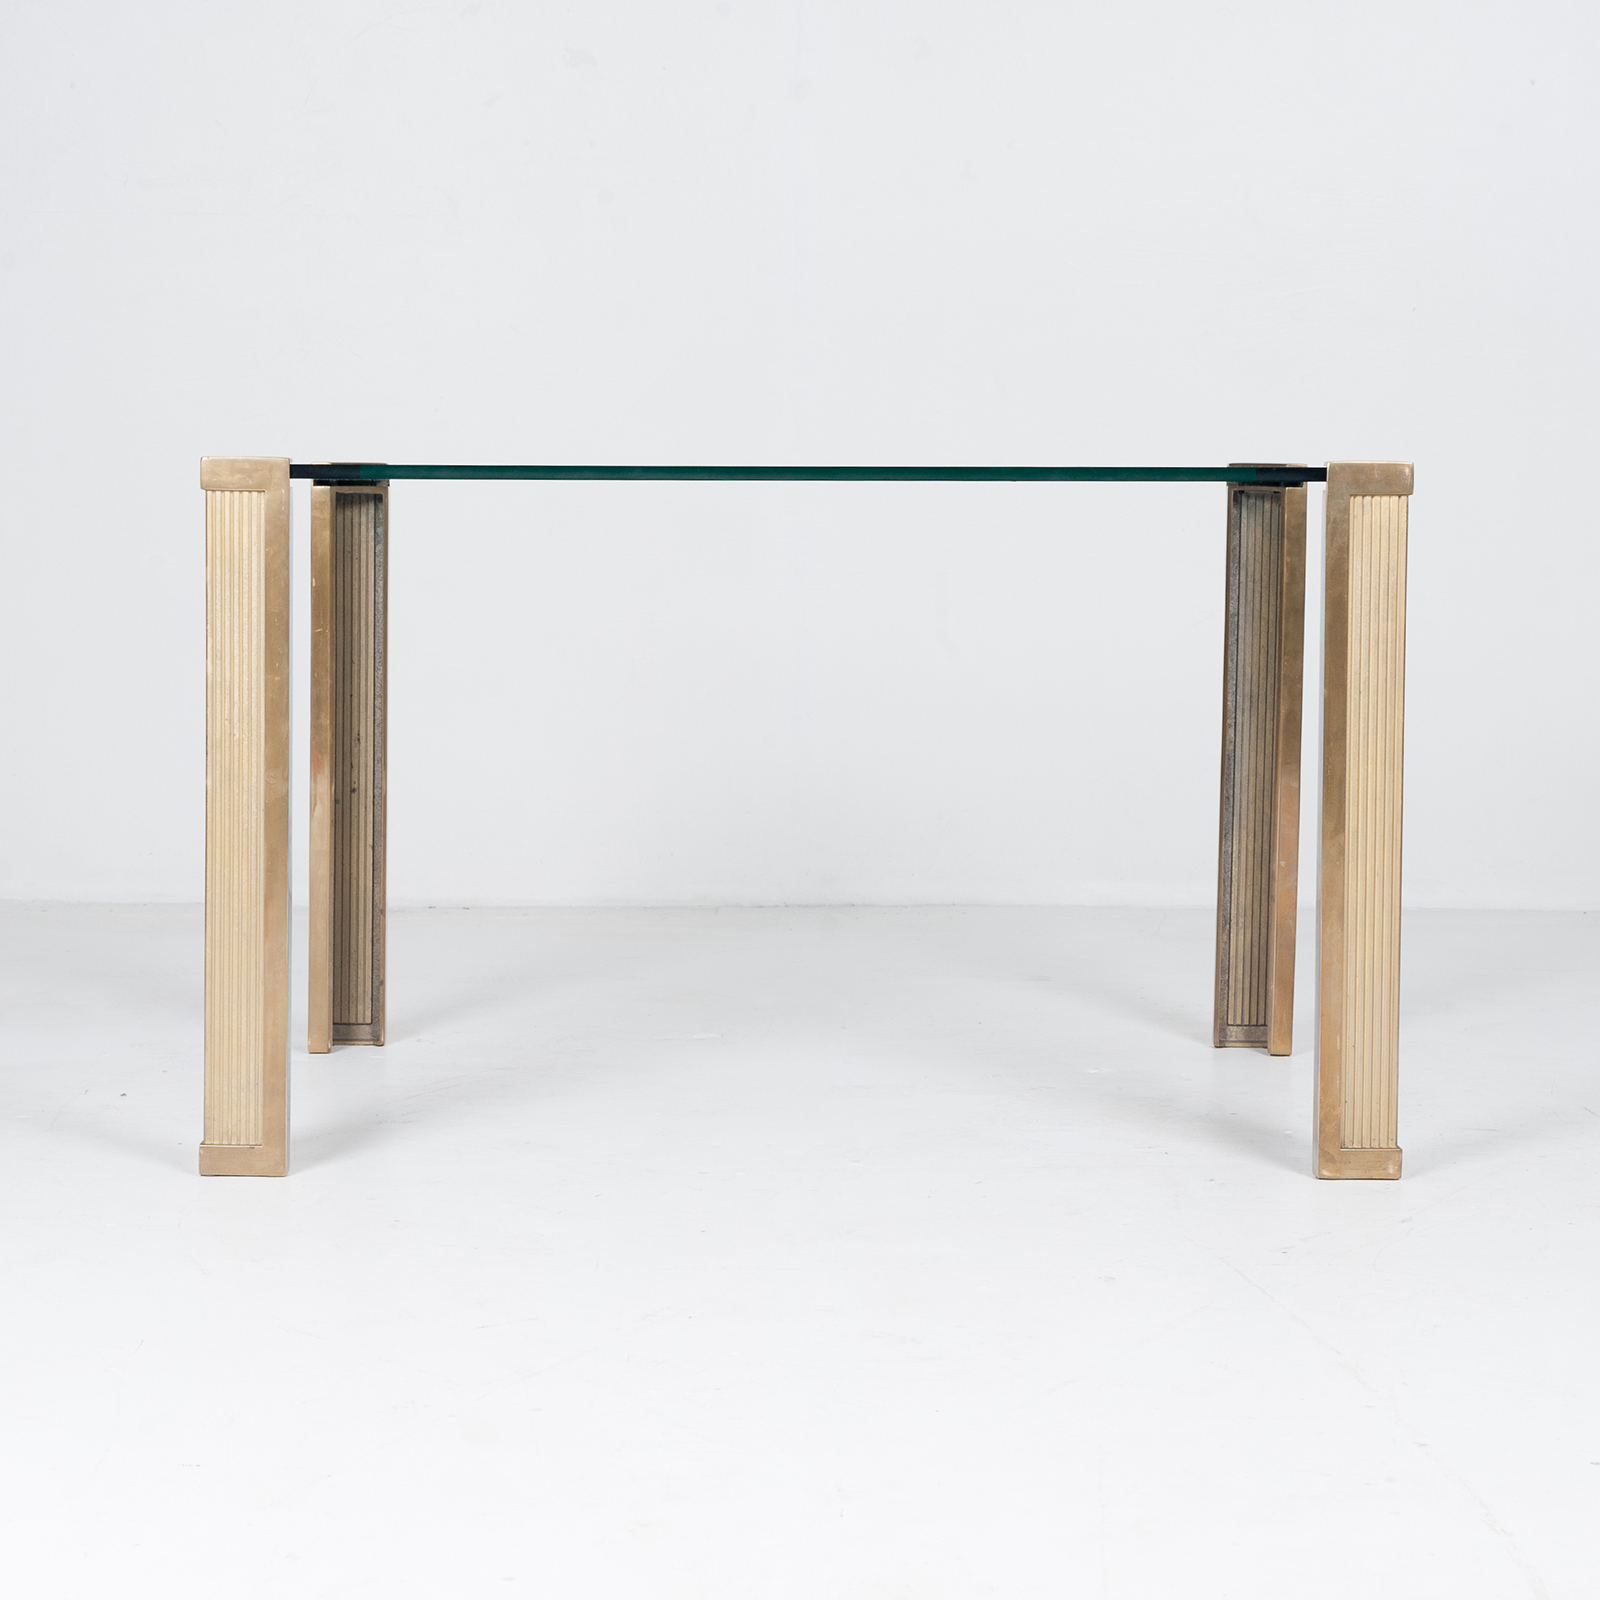 Dining Table With Solid Brass Cast Legs And Glass Top By Peter Ghyczy, 1970s, The Netherlands 86